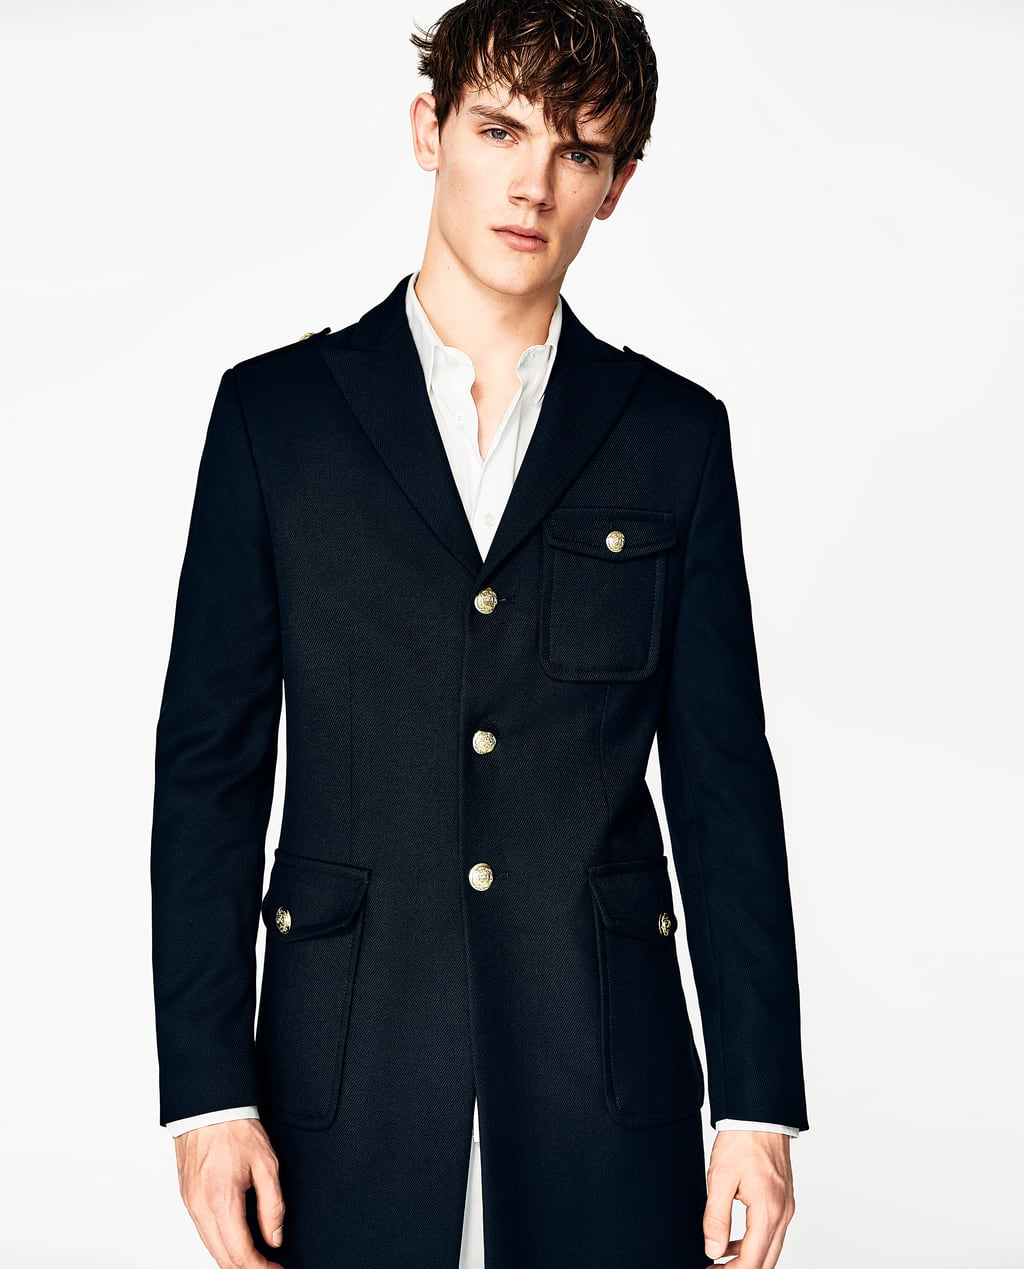 NAVY BLUE MILITARY COAT - OUTERWEAR-SALE-MAN | ZARA United States